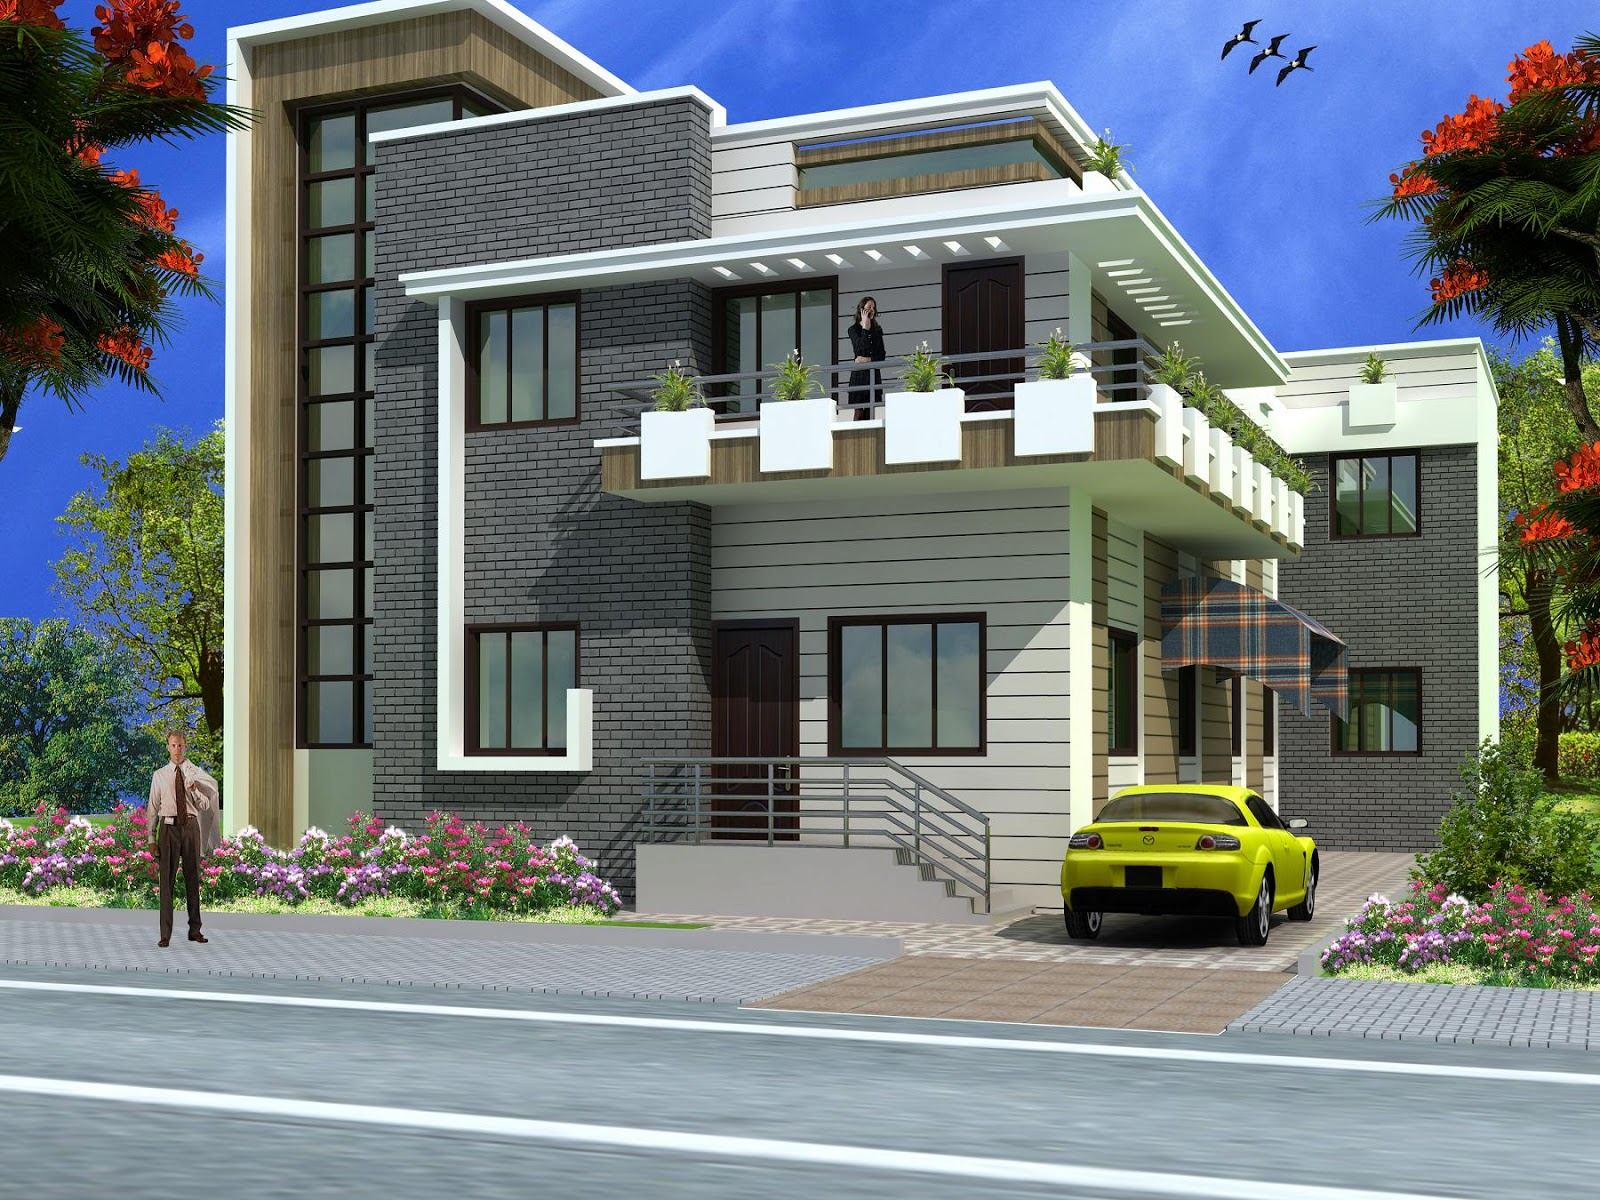 Superb Front Design Of Normal House Part - 8: Scintillating Normal Indian House Plans Gallery - Exterior Ideas 3D .